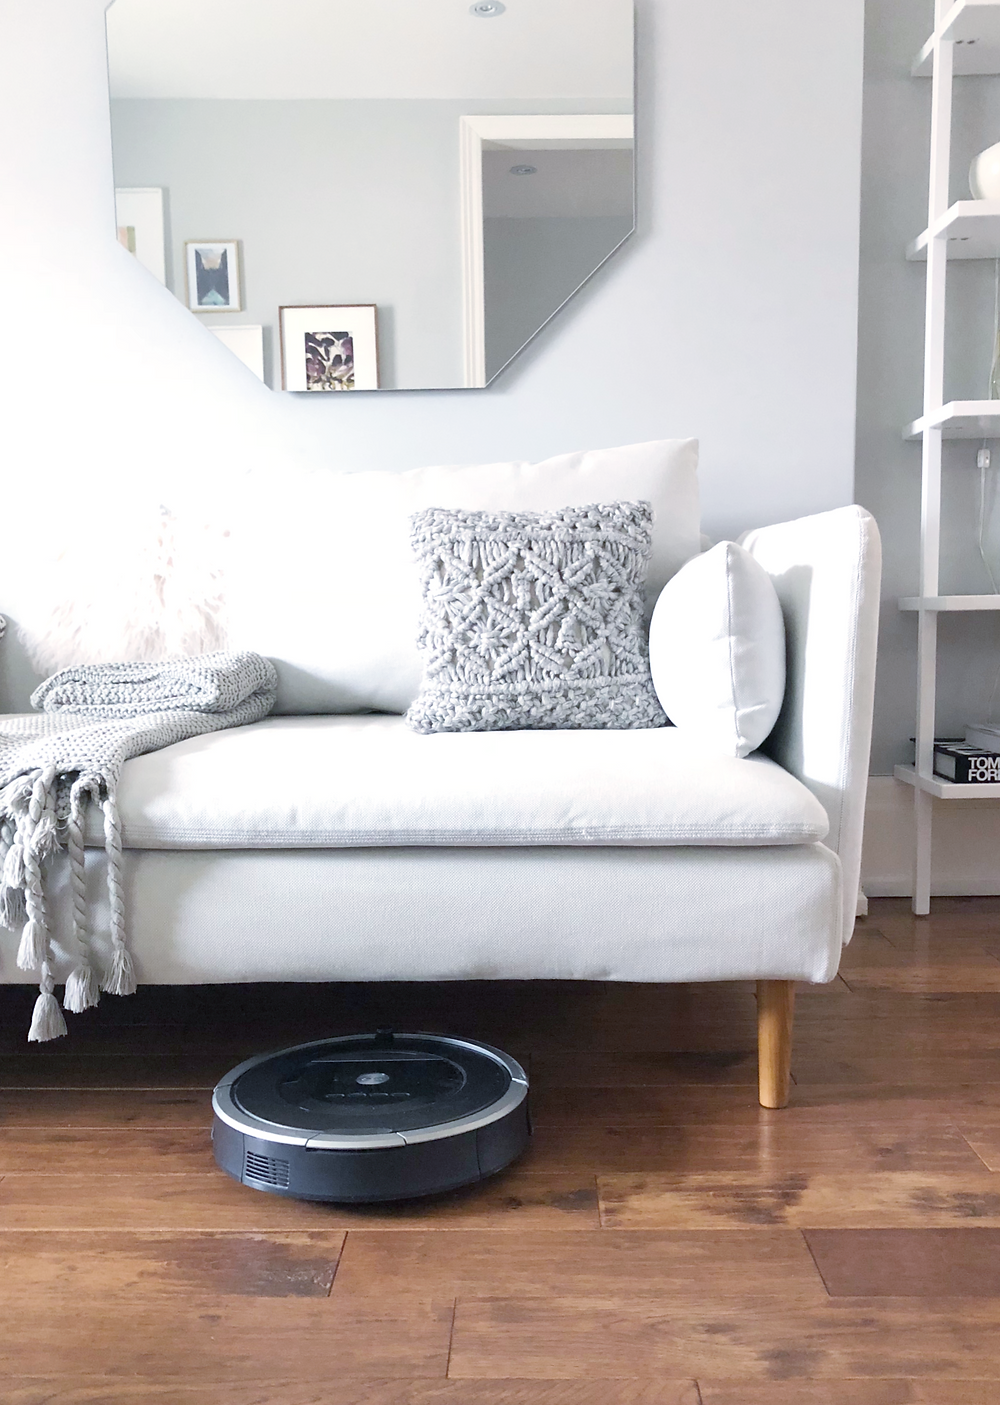 gadgets to keep a tidy home